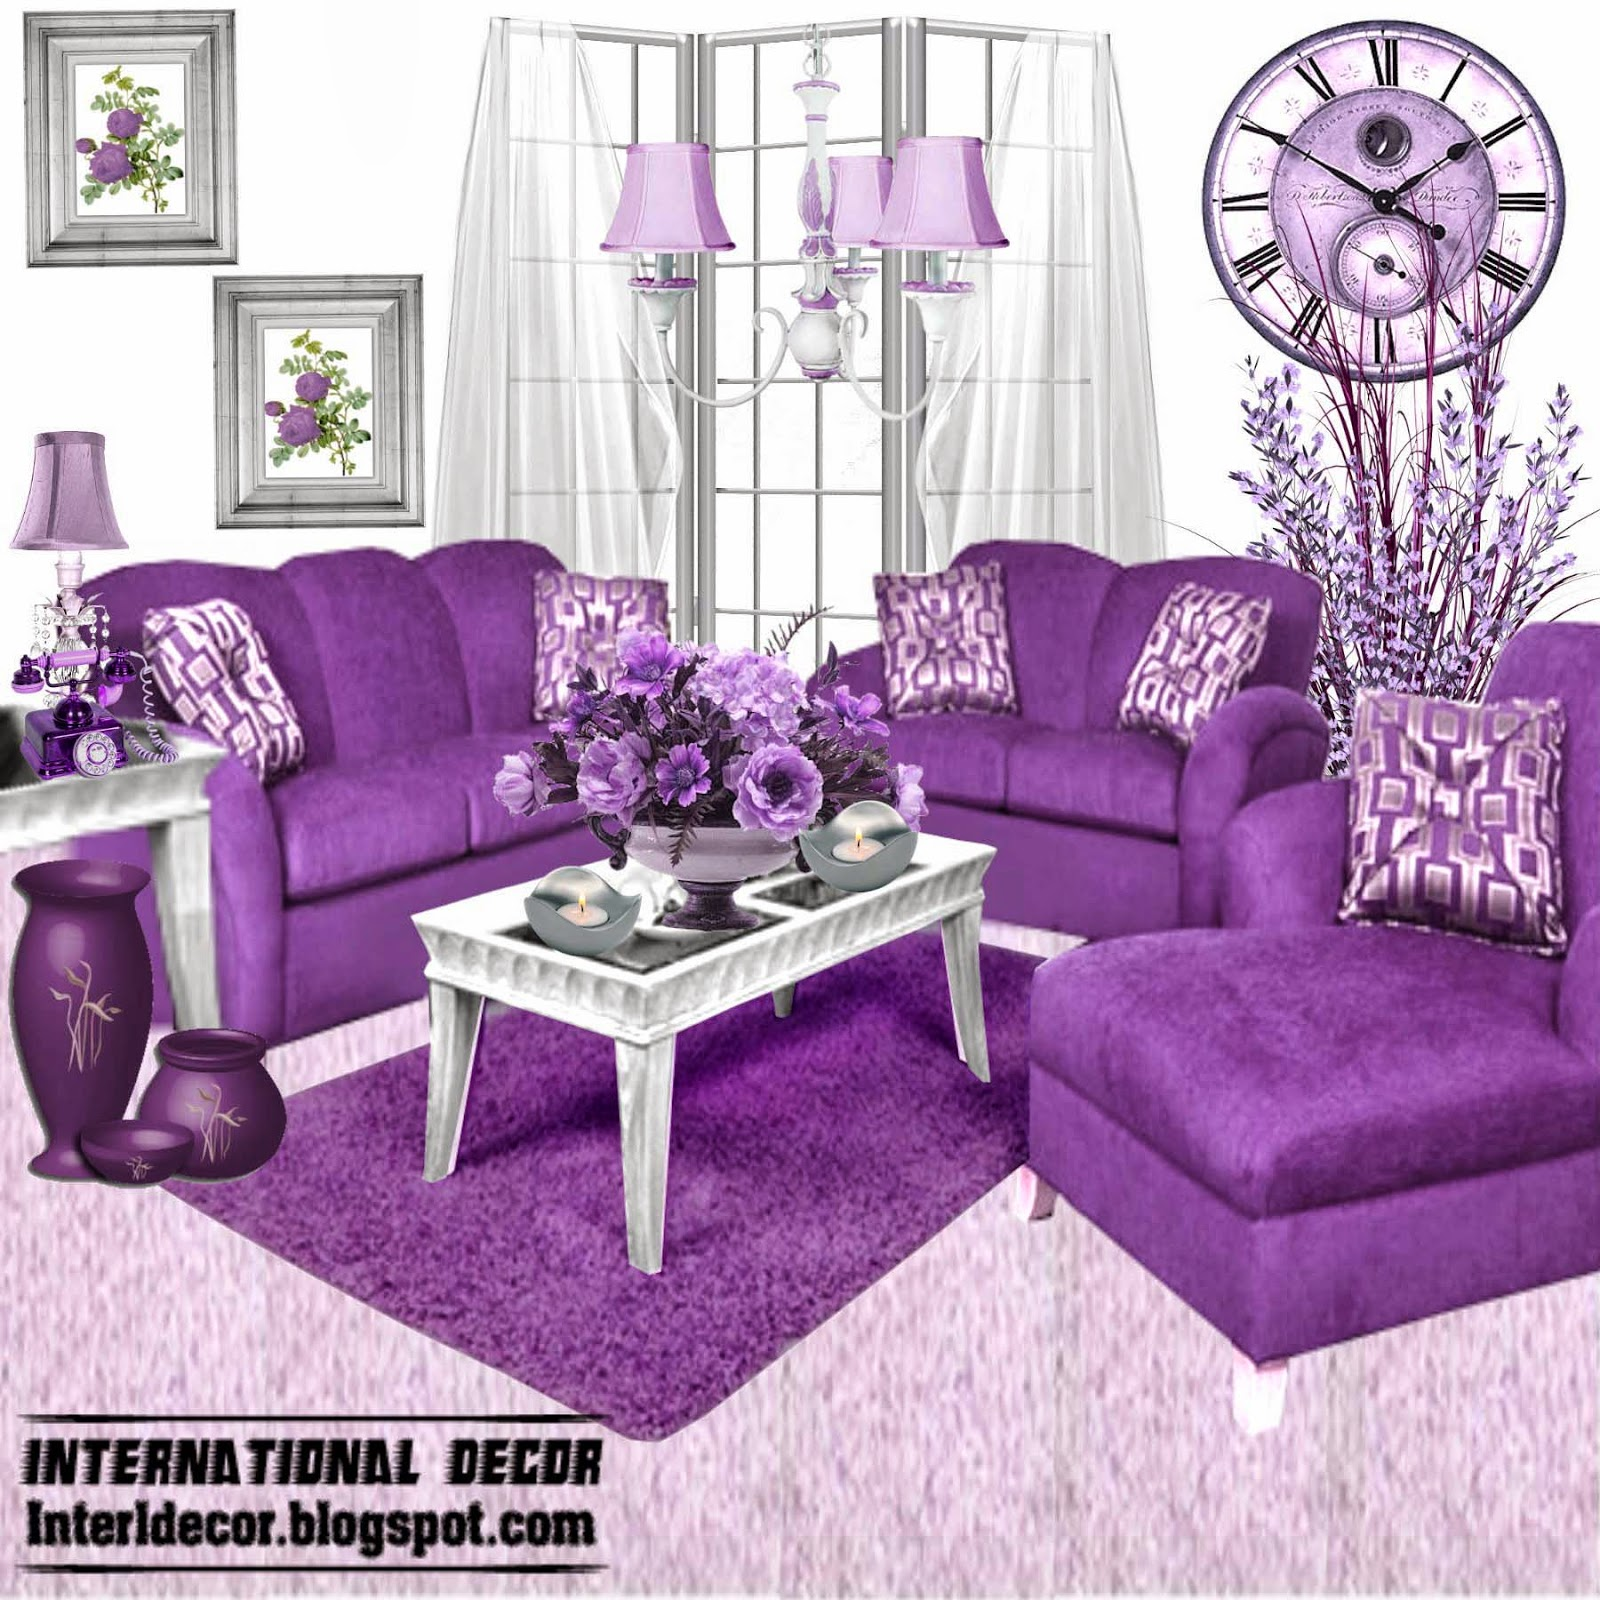 Purple furniture for the home pinterest purple for Living room 4 chairs